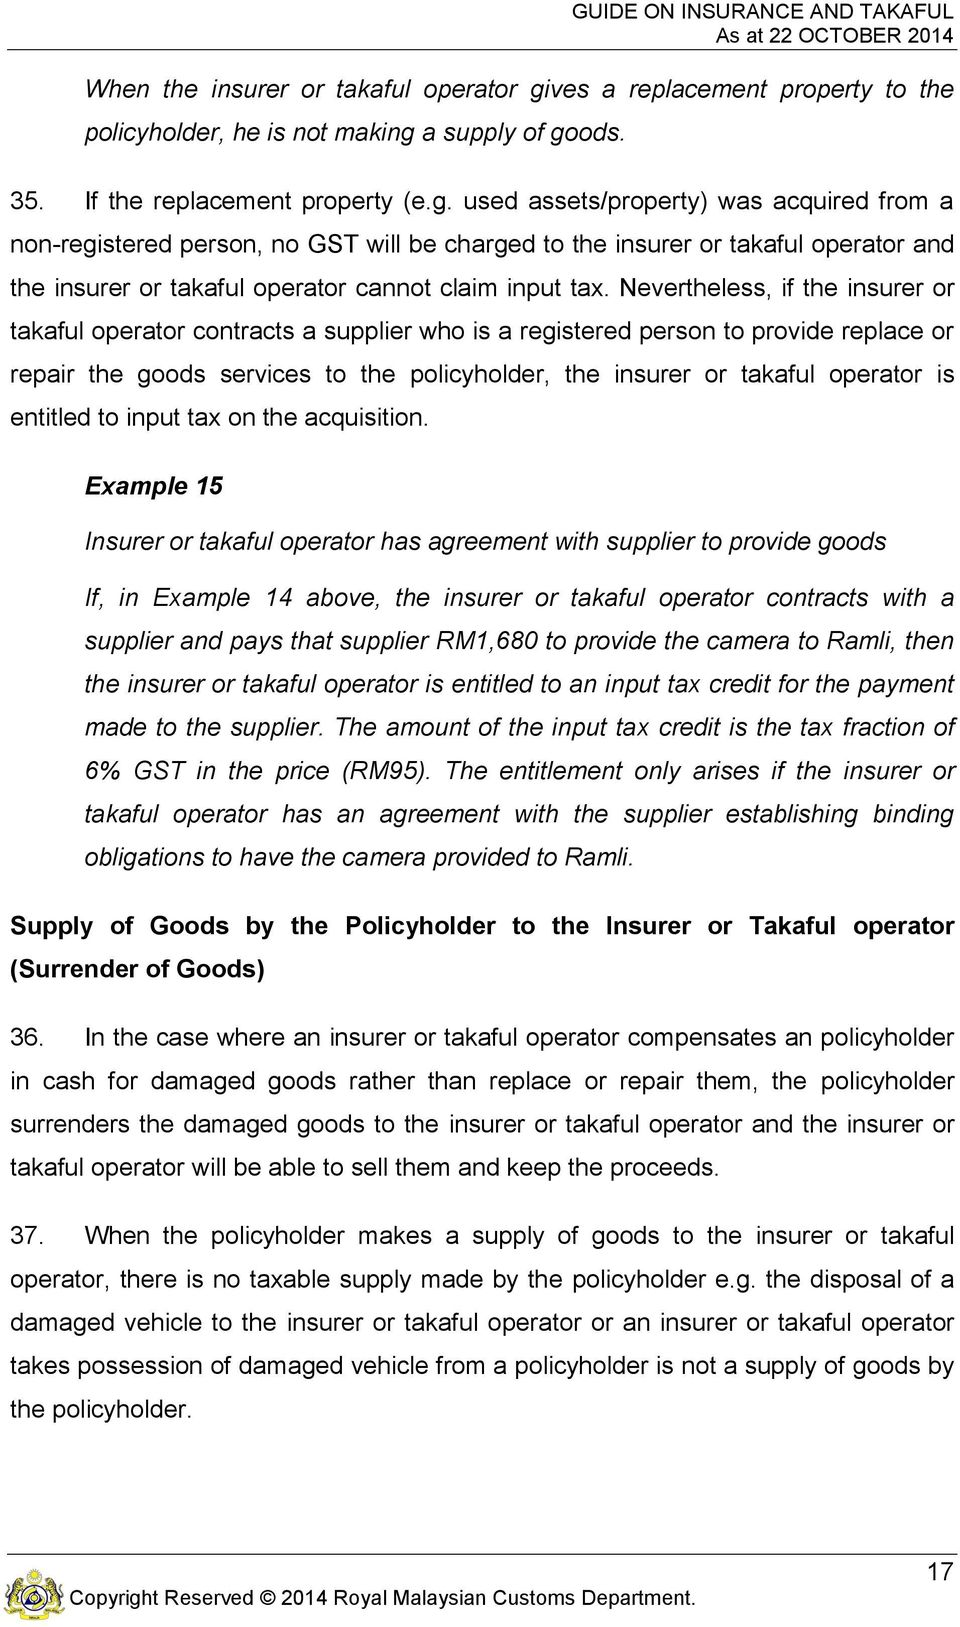 a supply of goods. 35. If the replacement property (e.g. used assets/property) was acquired from a non-registered person, no GST will be charged to the insurer or takaful operator and the insurer or takaful operator cannot claim input tax.